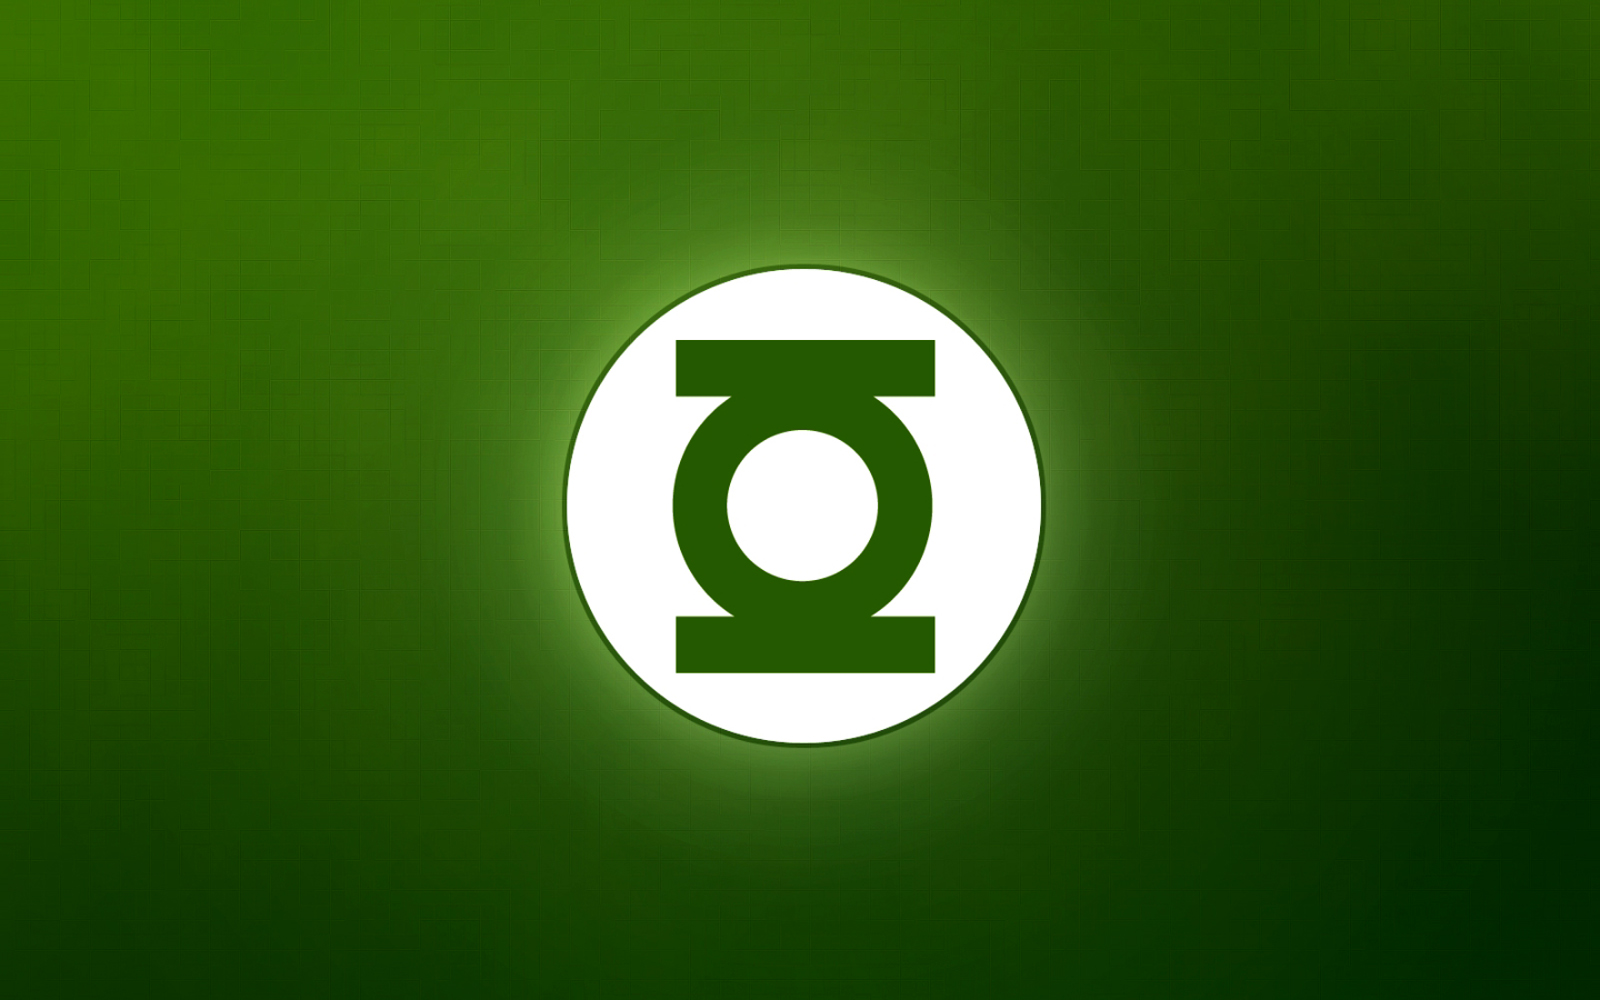 Main moreover Index Main likewise Green Lantern  ics Logo Hd Wallpaper Vvallpaper moreover Frosch in addition Main Red Bar. on main